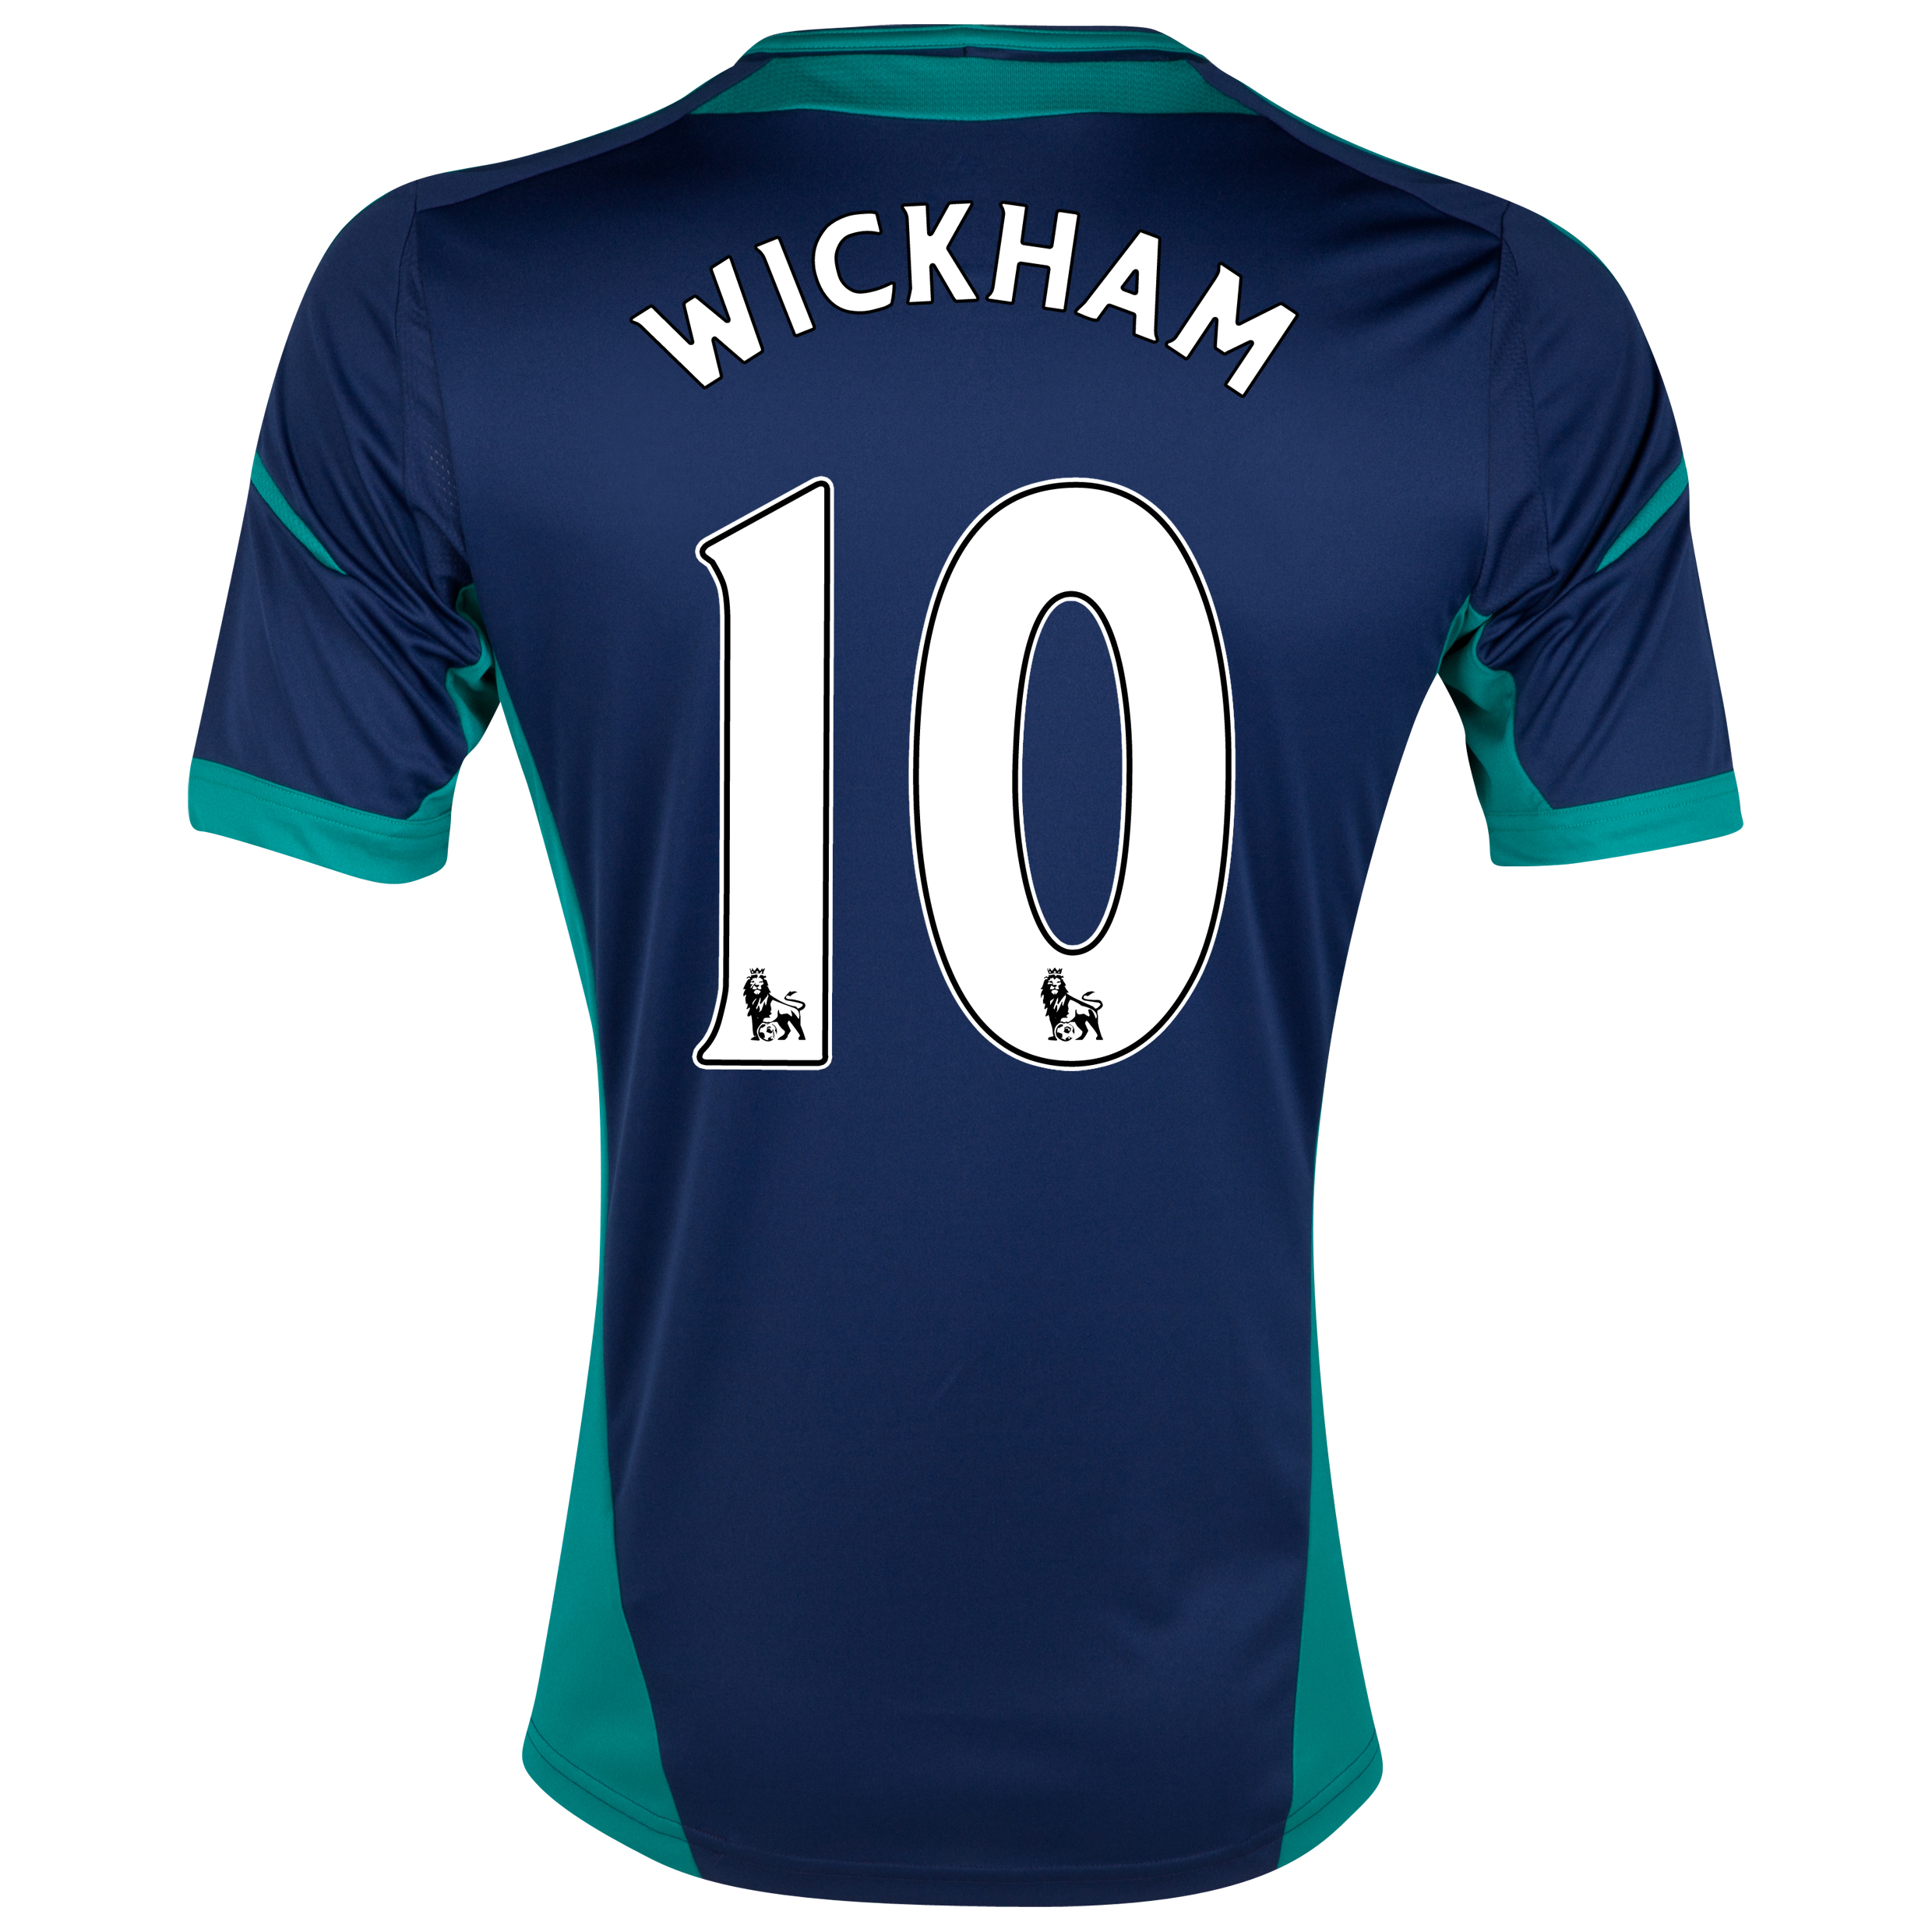 Sunderland Away Shirt 2012/13 - Junior with Wickham 10 printing